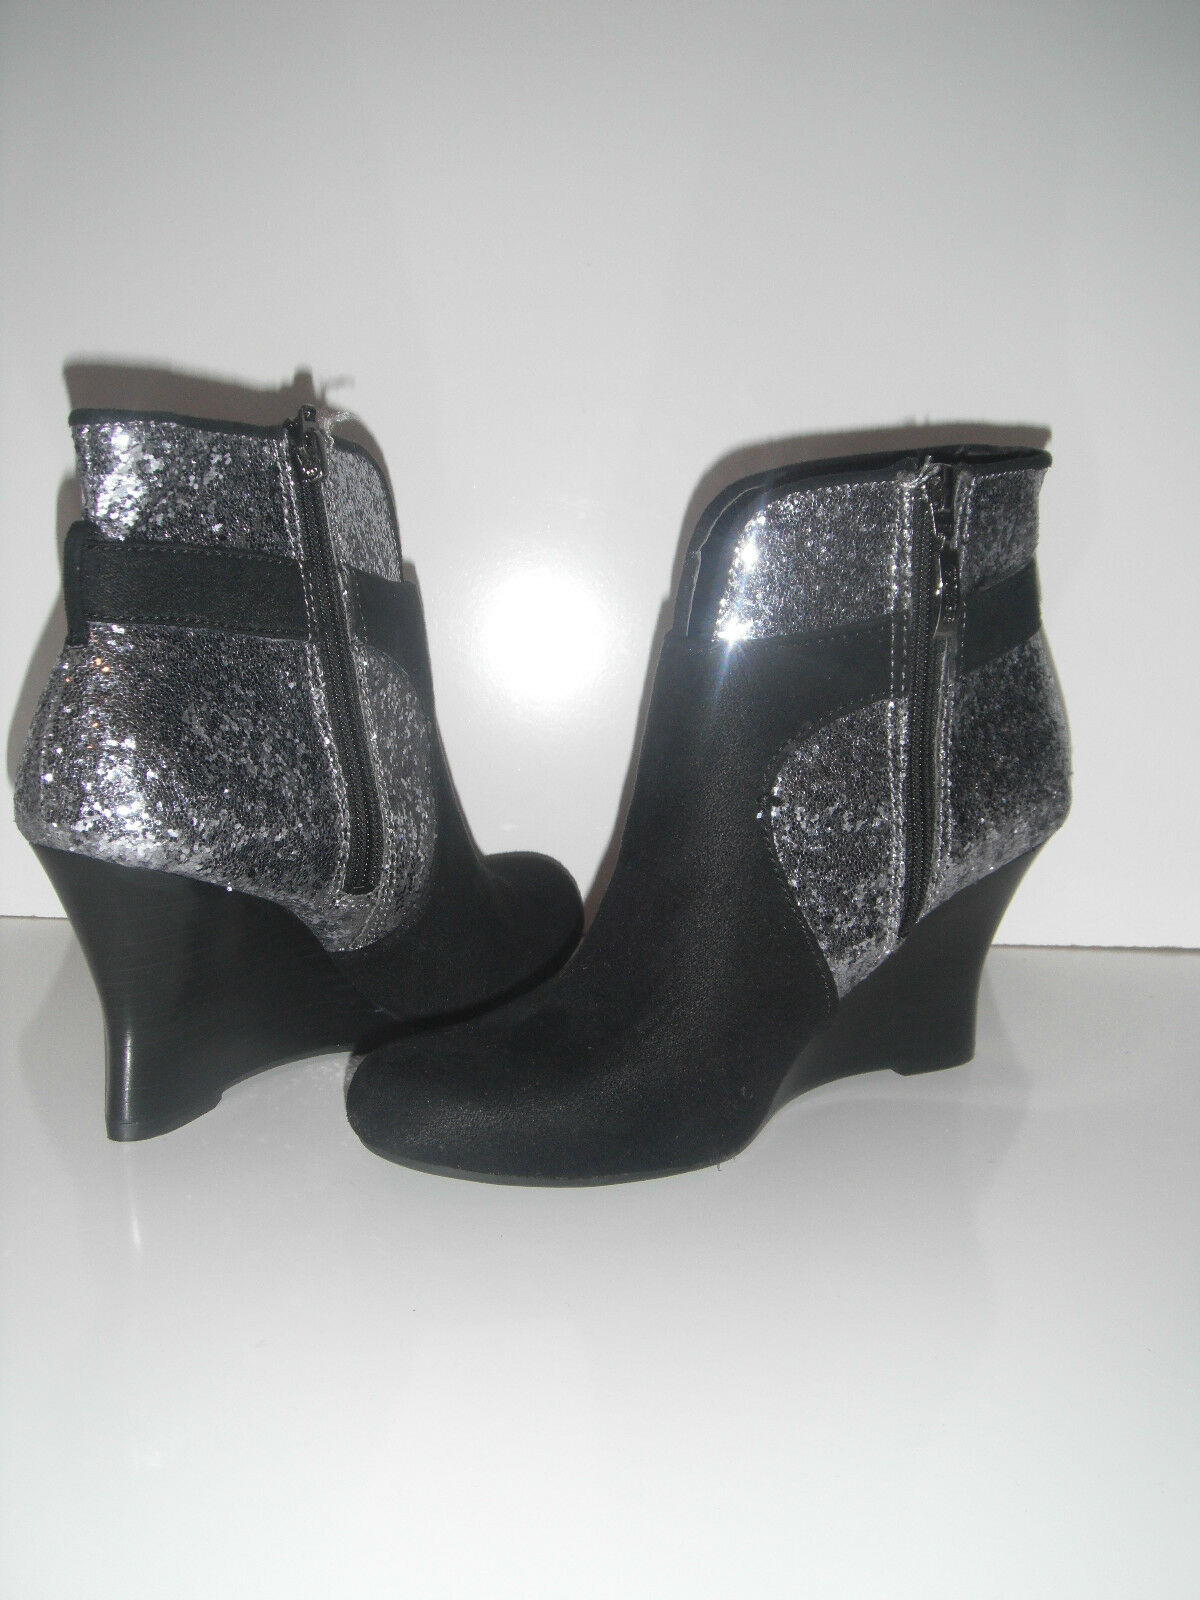 New Guess Guess New Damens's Glandan Wedge Ankle bootie sz 6 16272f